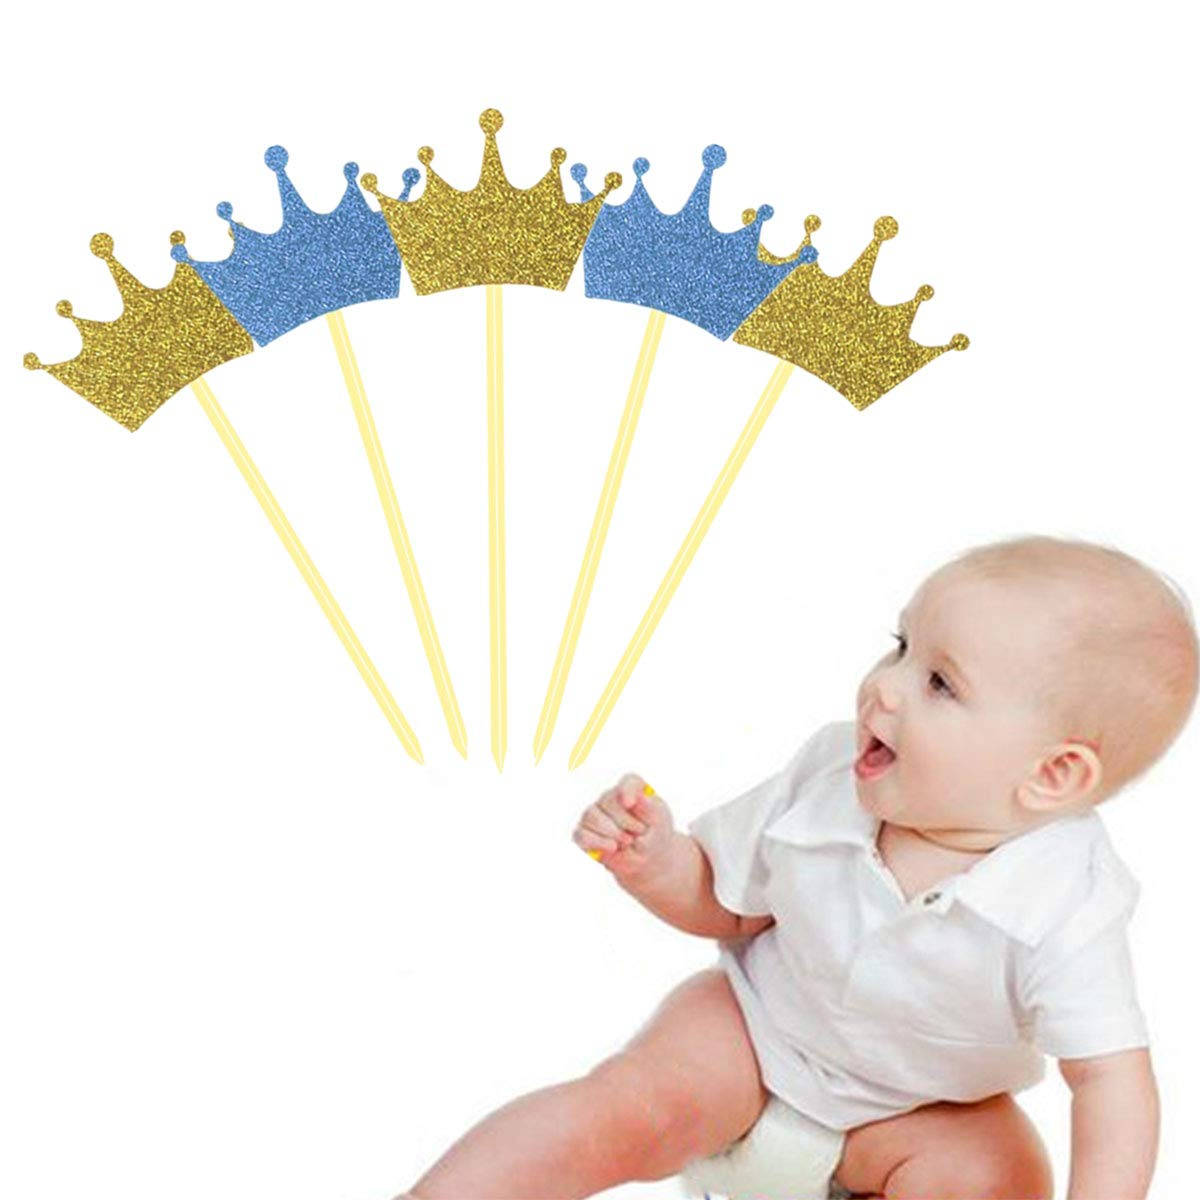 Toyvian 40pcs Cupcake Toppers Cute Crown Cake Toppers Selecciones para Baby Shower Cumpleaños Wedding Party Cake Decoration Supplies: Amazon.es: Hogar